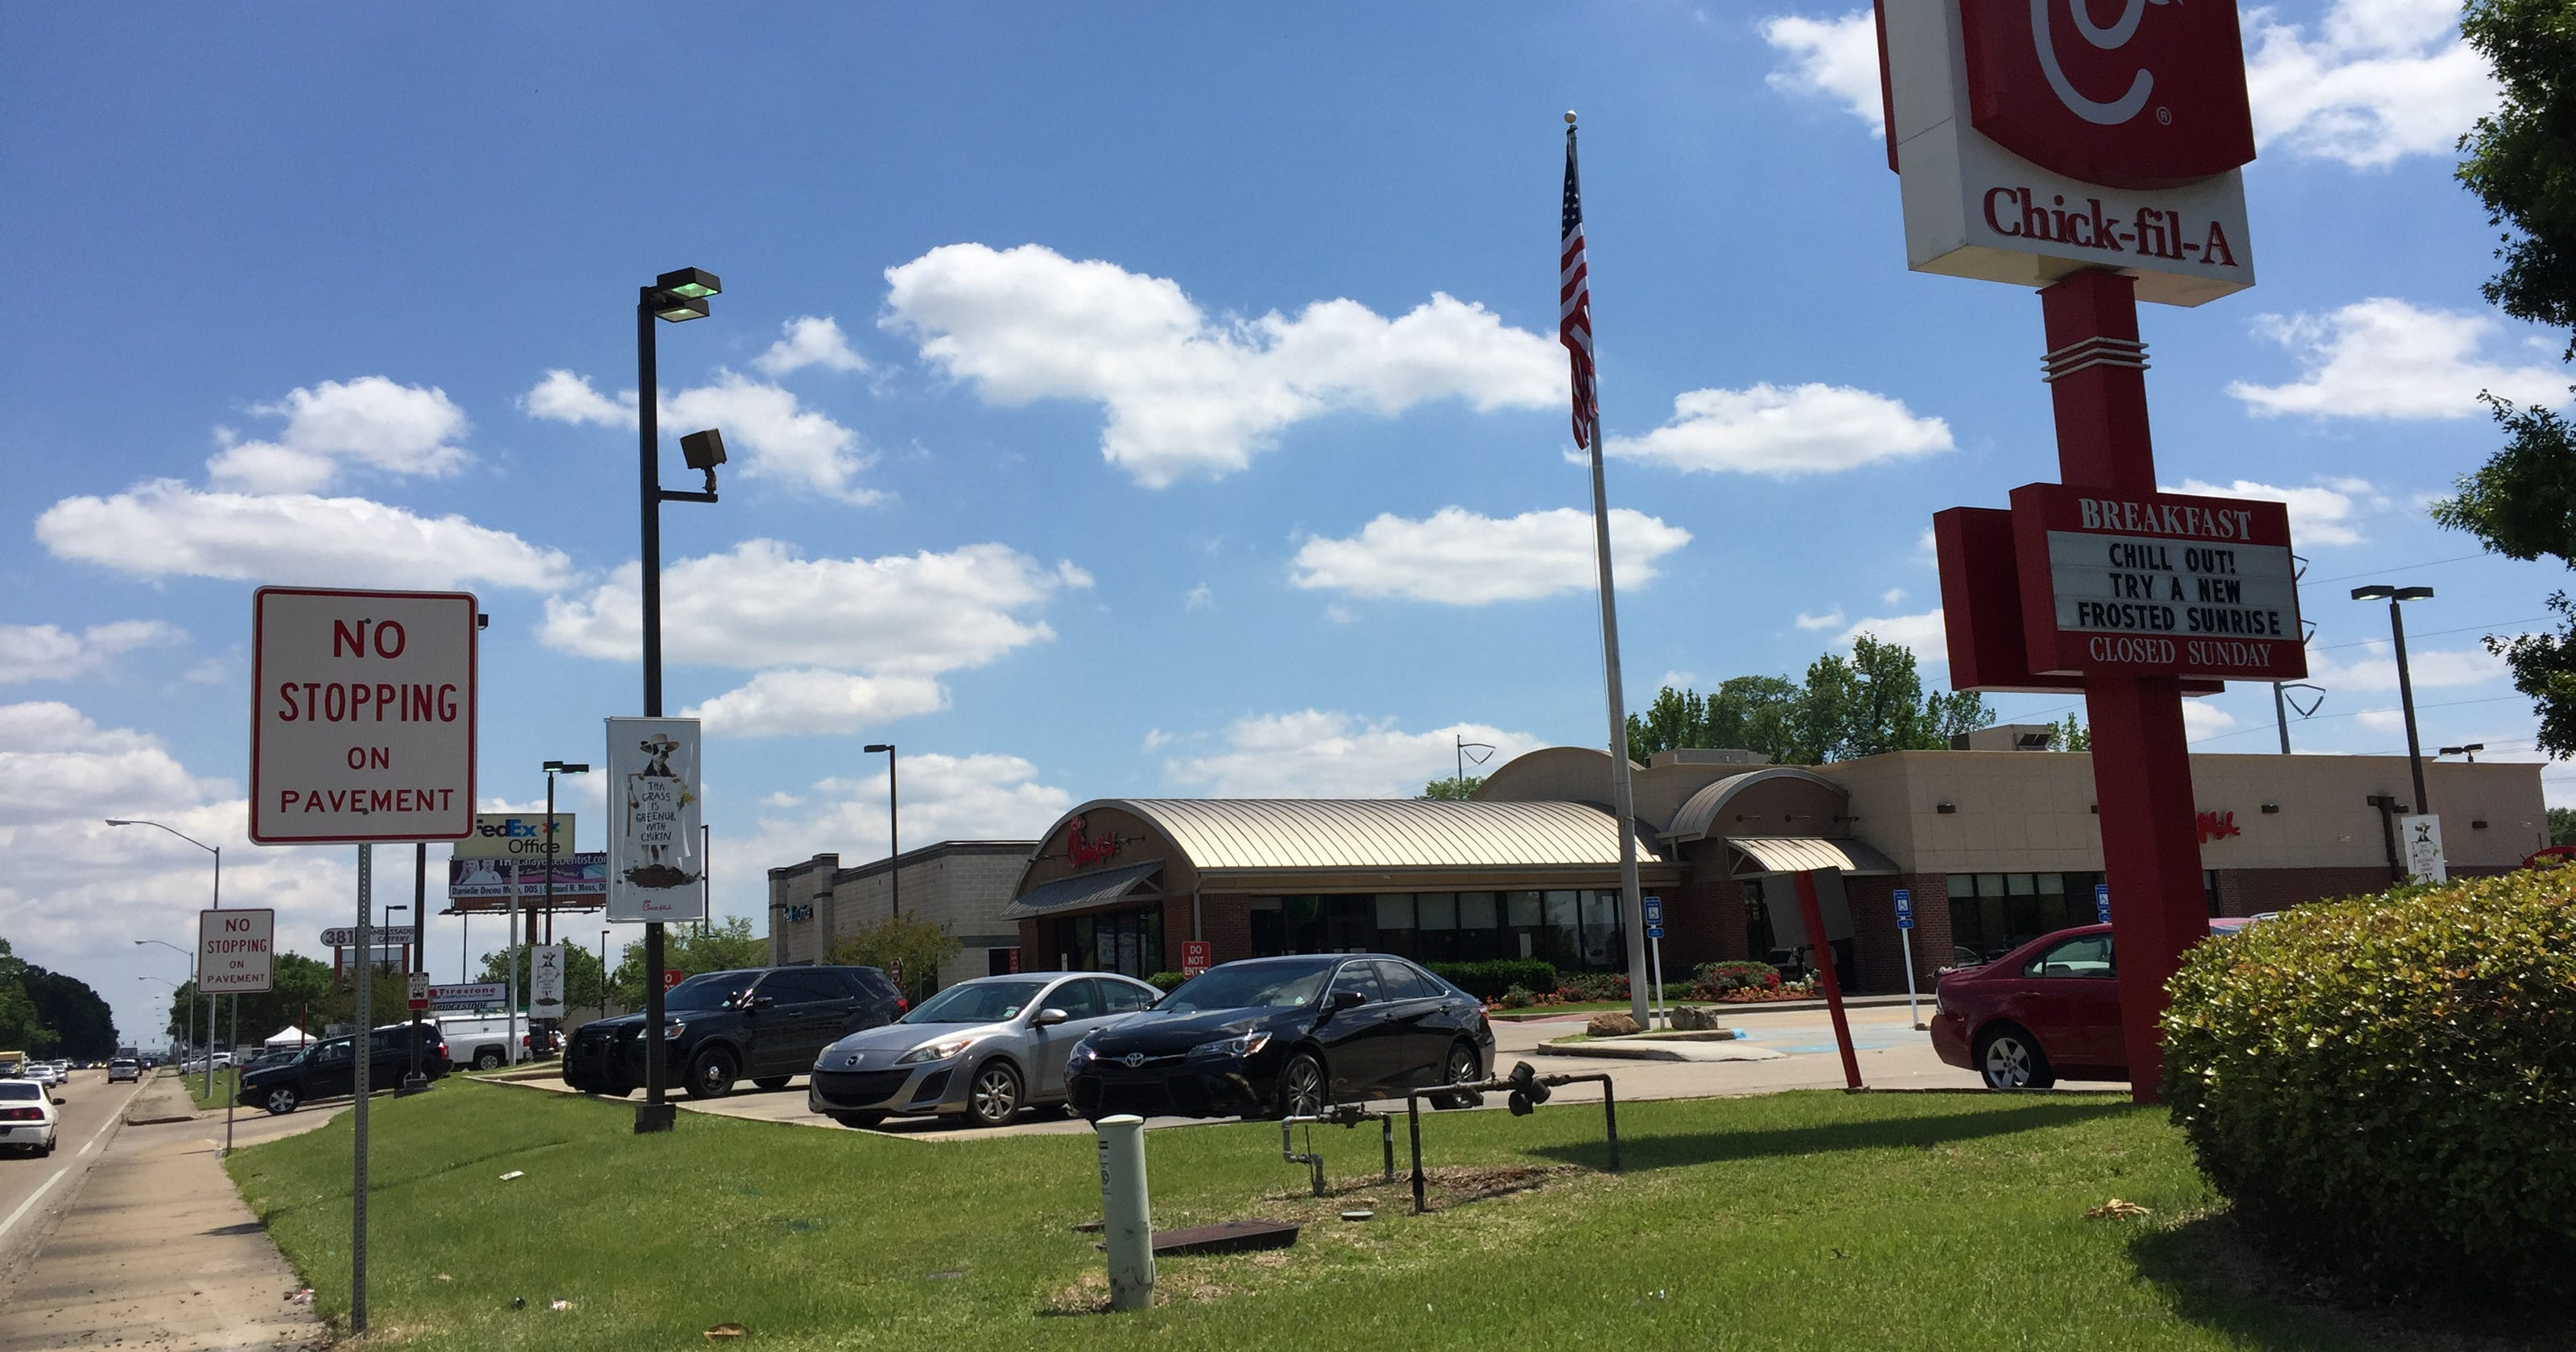 Chick-fil-A wants to unclog its drive-thru, too